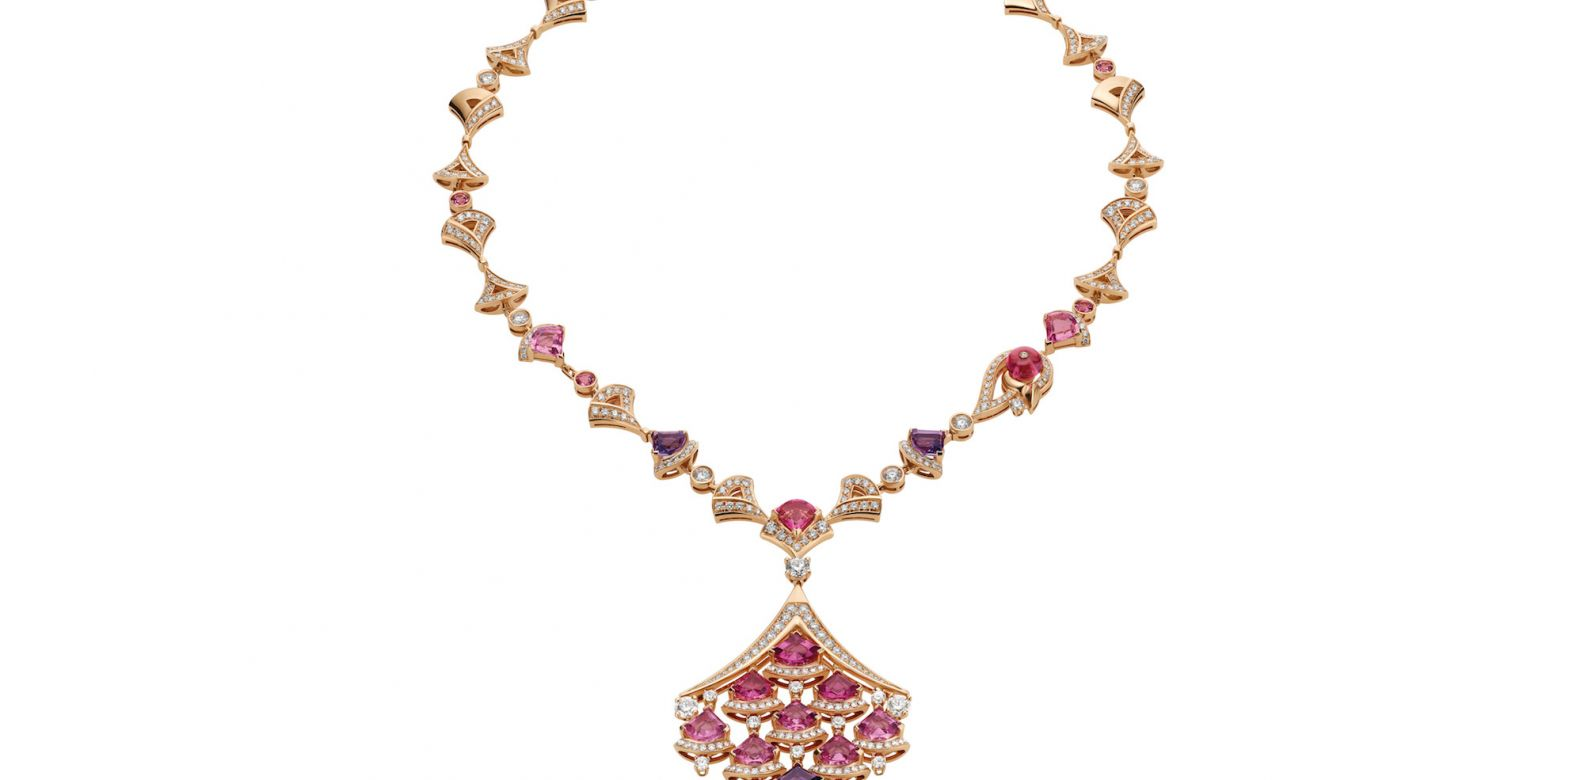 Necklace in pink gold with amethyst, pink tourmaline, rubellite and diamonds (6.75cts)